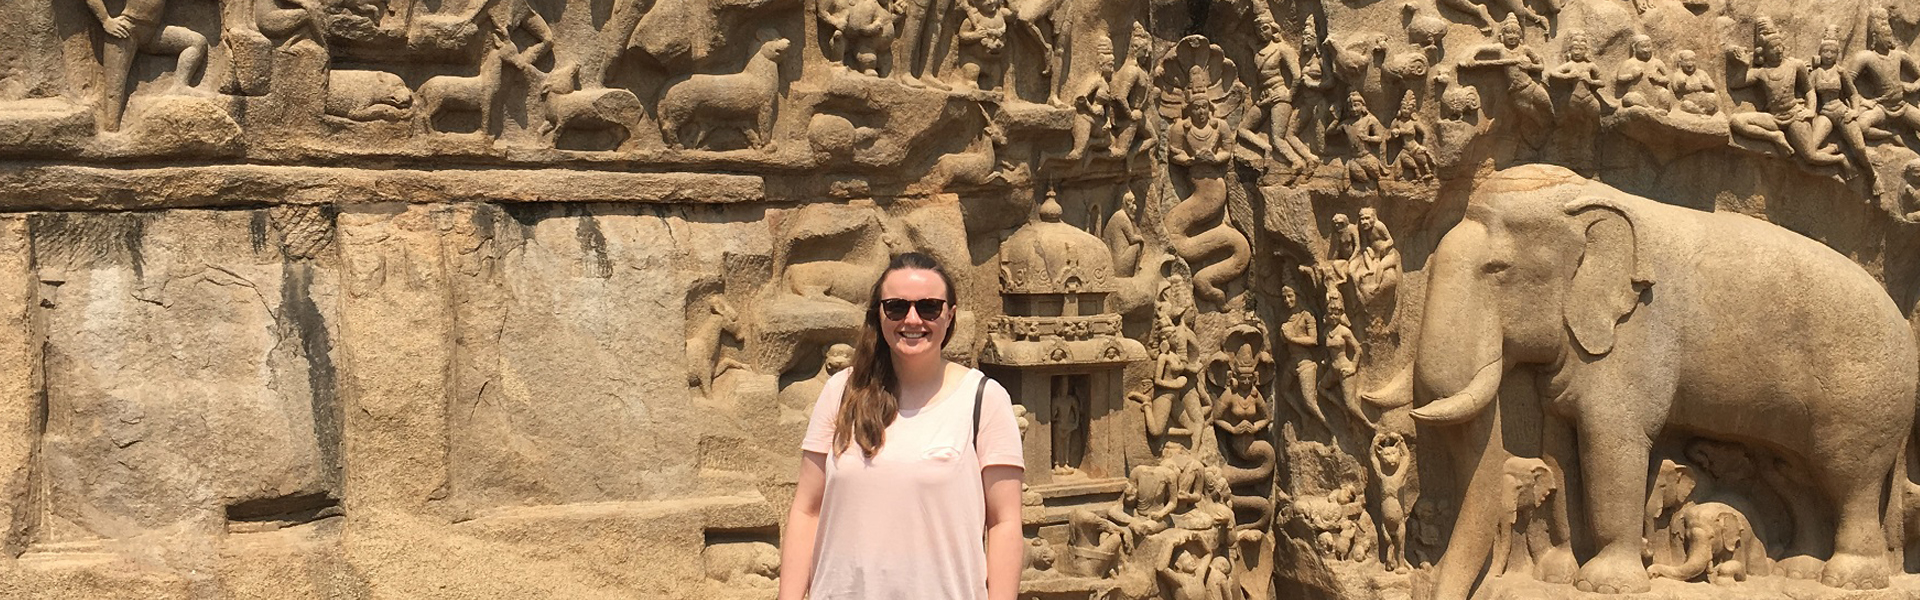 Chloe in front of a wall carving